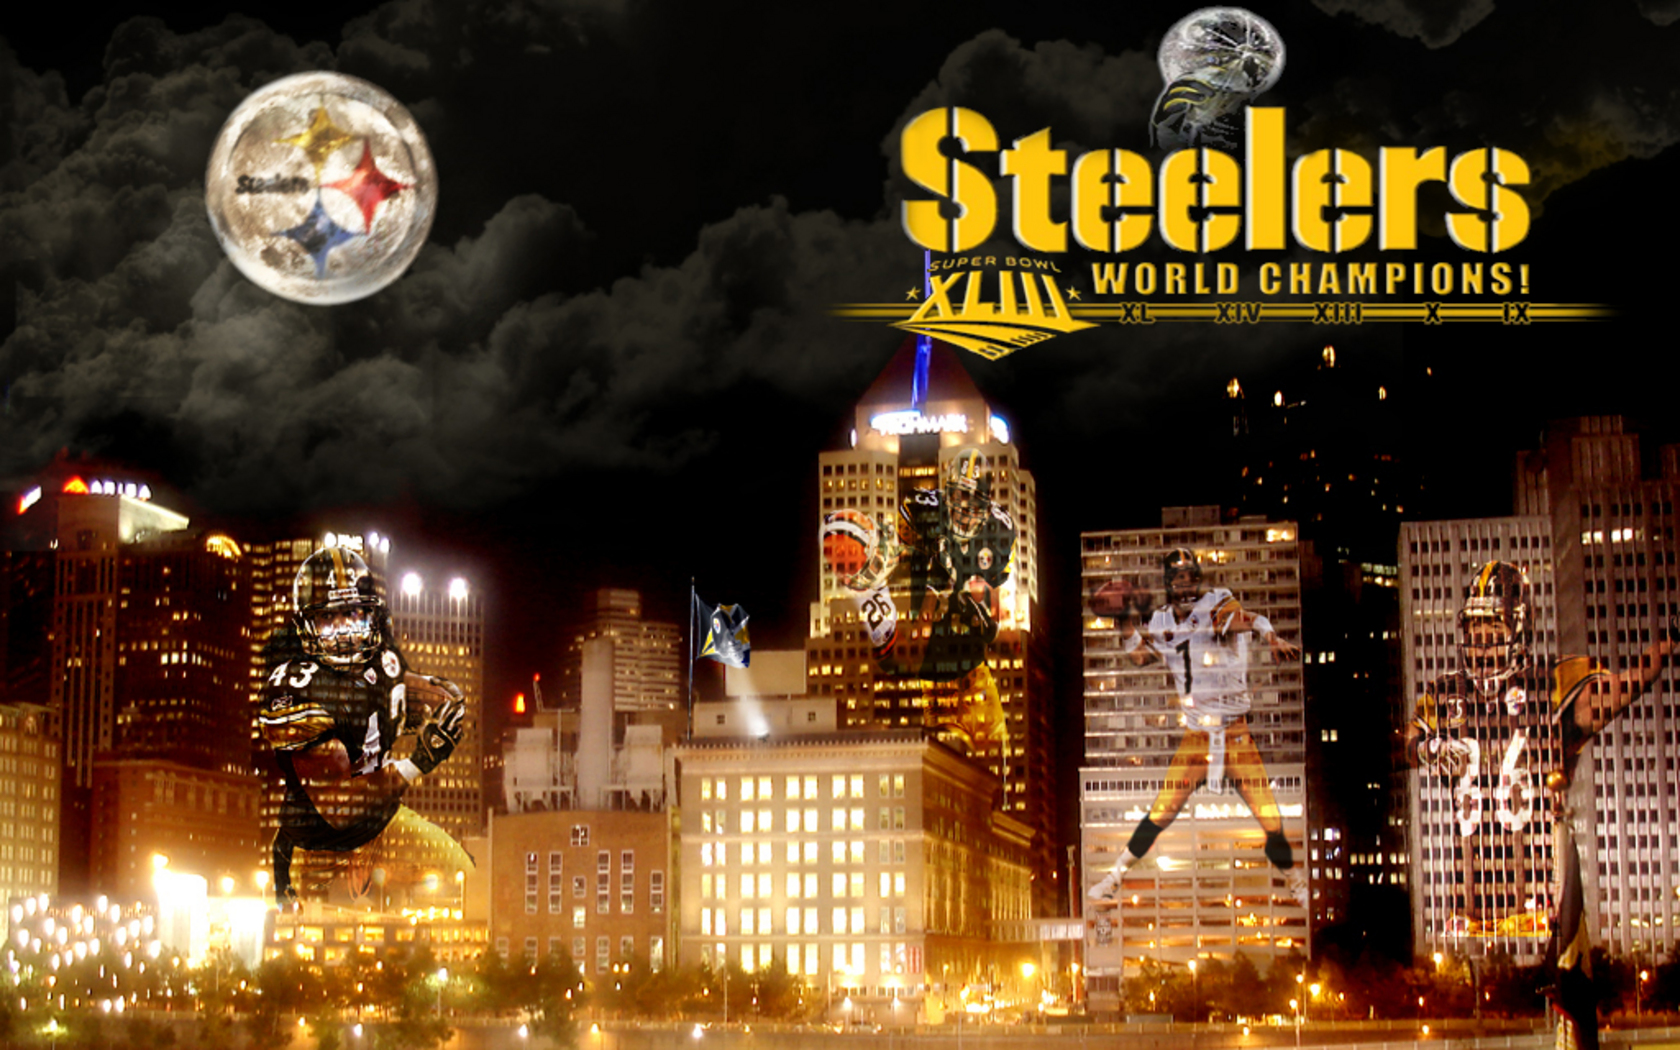 Pittsburgh Steelers Wallpaper 69 Download Screensavers 1680x1050